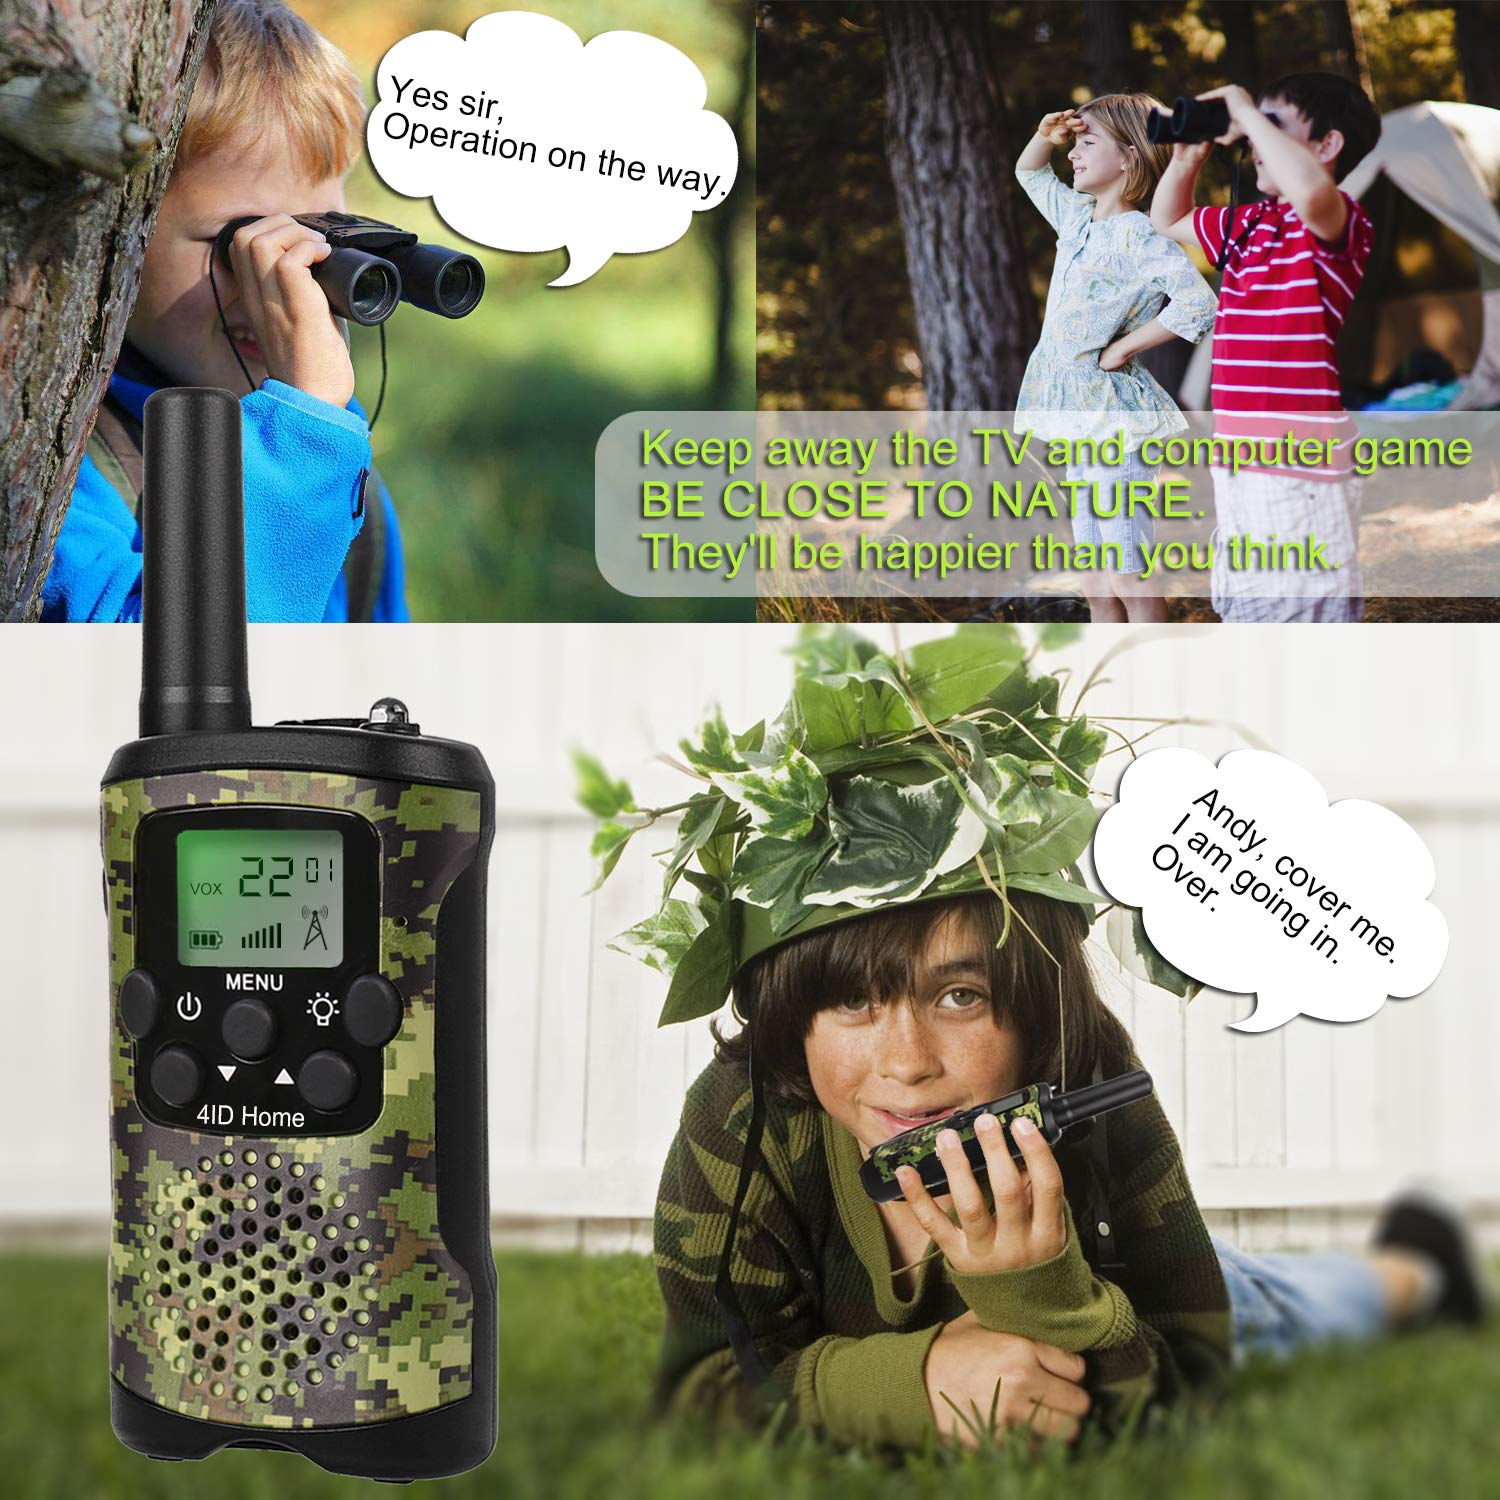 Walkie Talkie for Kids Binoculars for Kids Compass Outdoor Toys Kit Long Range Walkie Talkies Durable Toy Best Birthday Gifts for 6 year old Boys fit Outdoor Adventure Game Camping (Green Camo) by 4ID Home (Image #3)